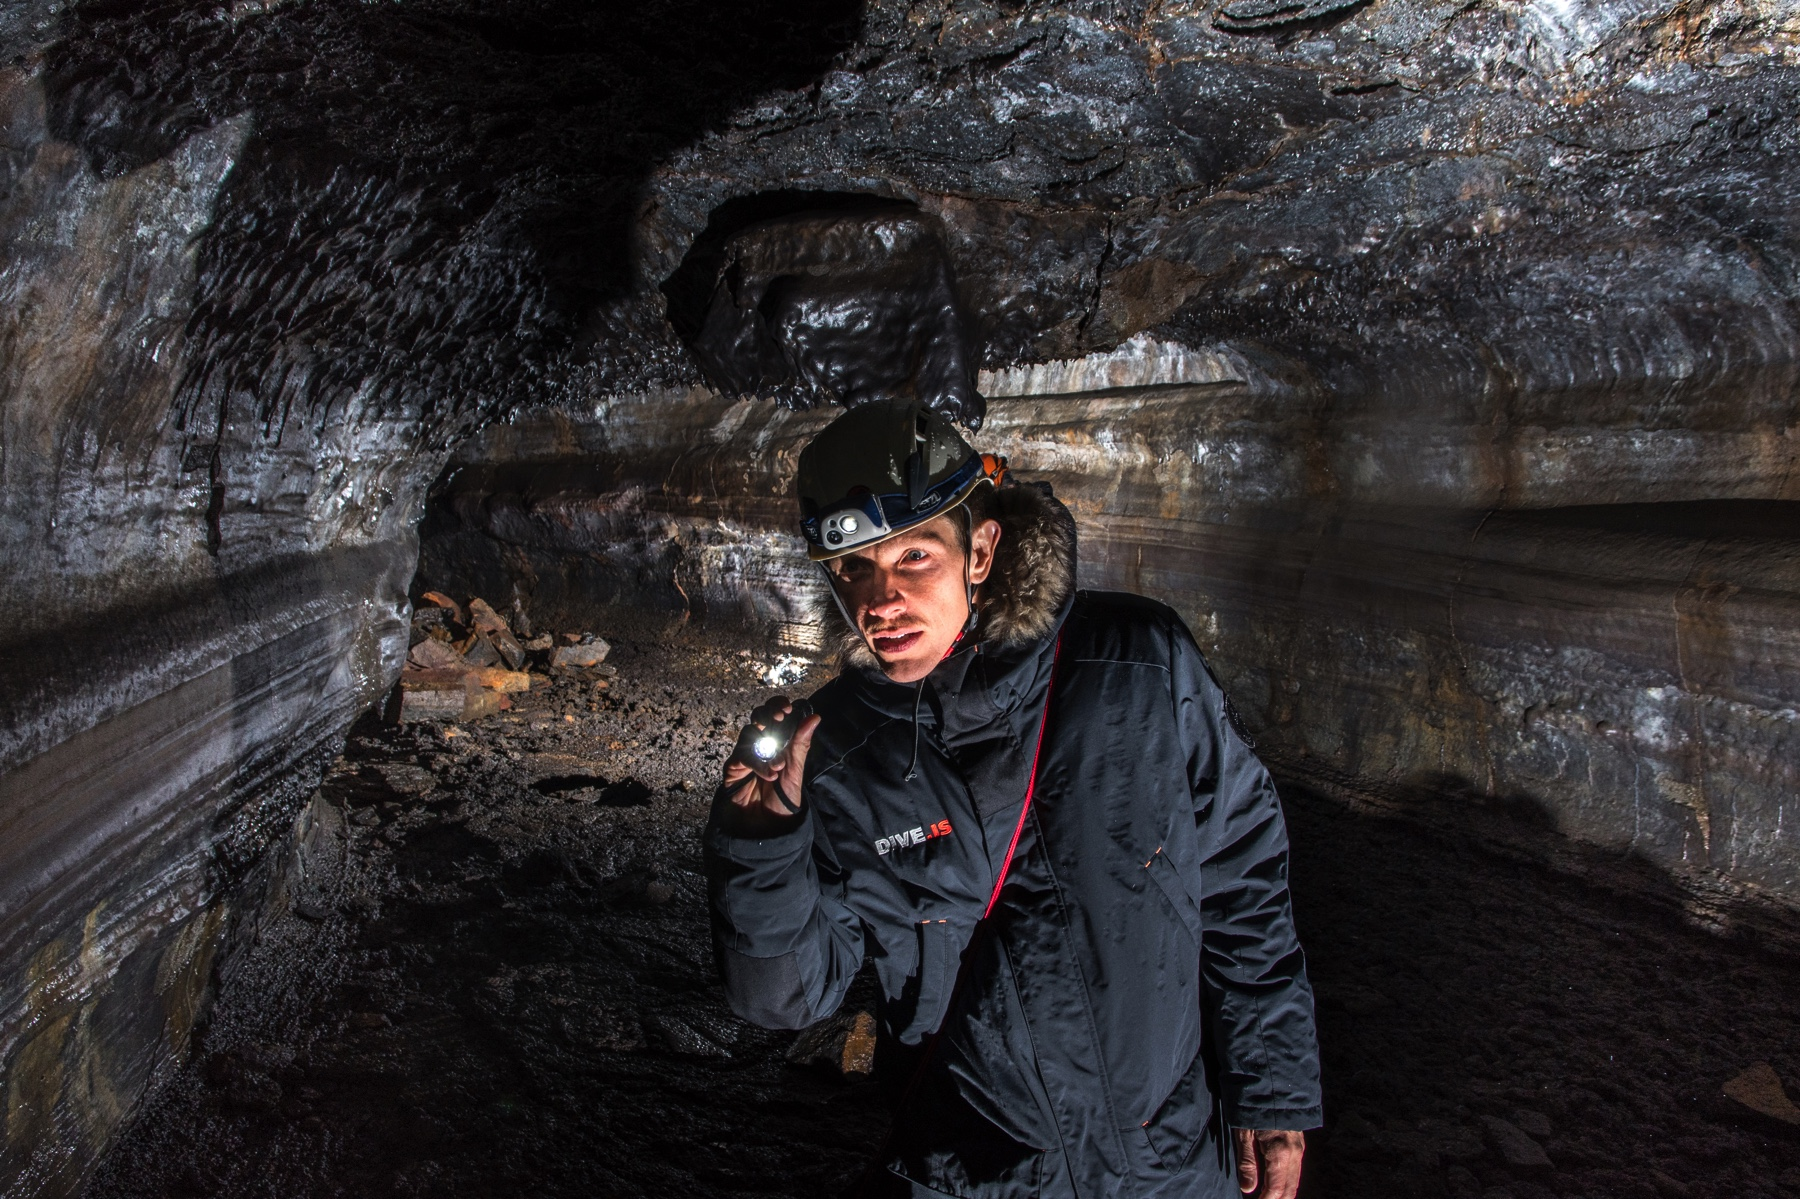 caver-lava-tube-iceland-anders-nyberg